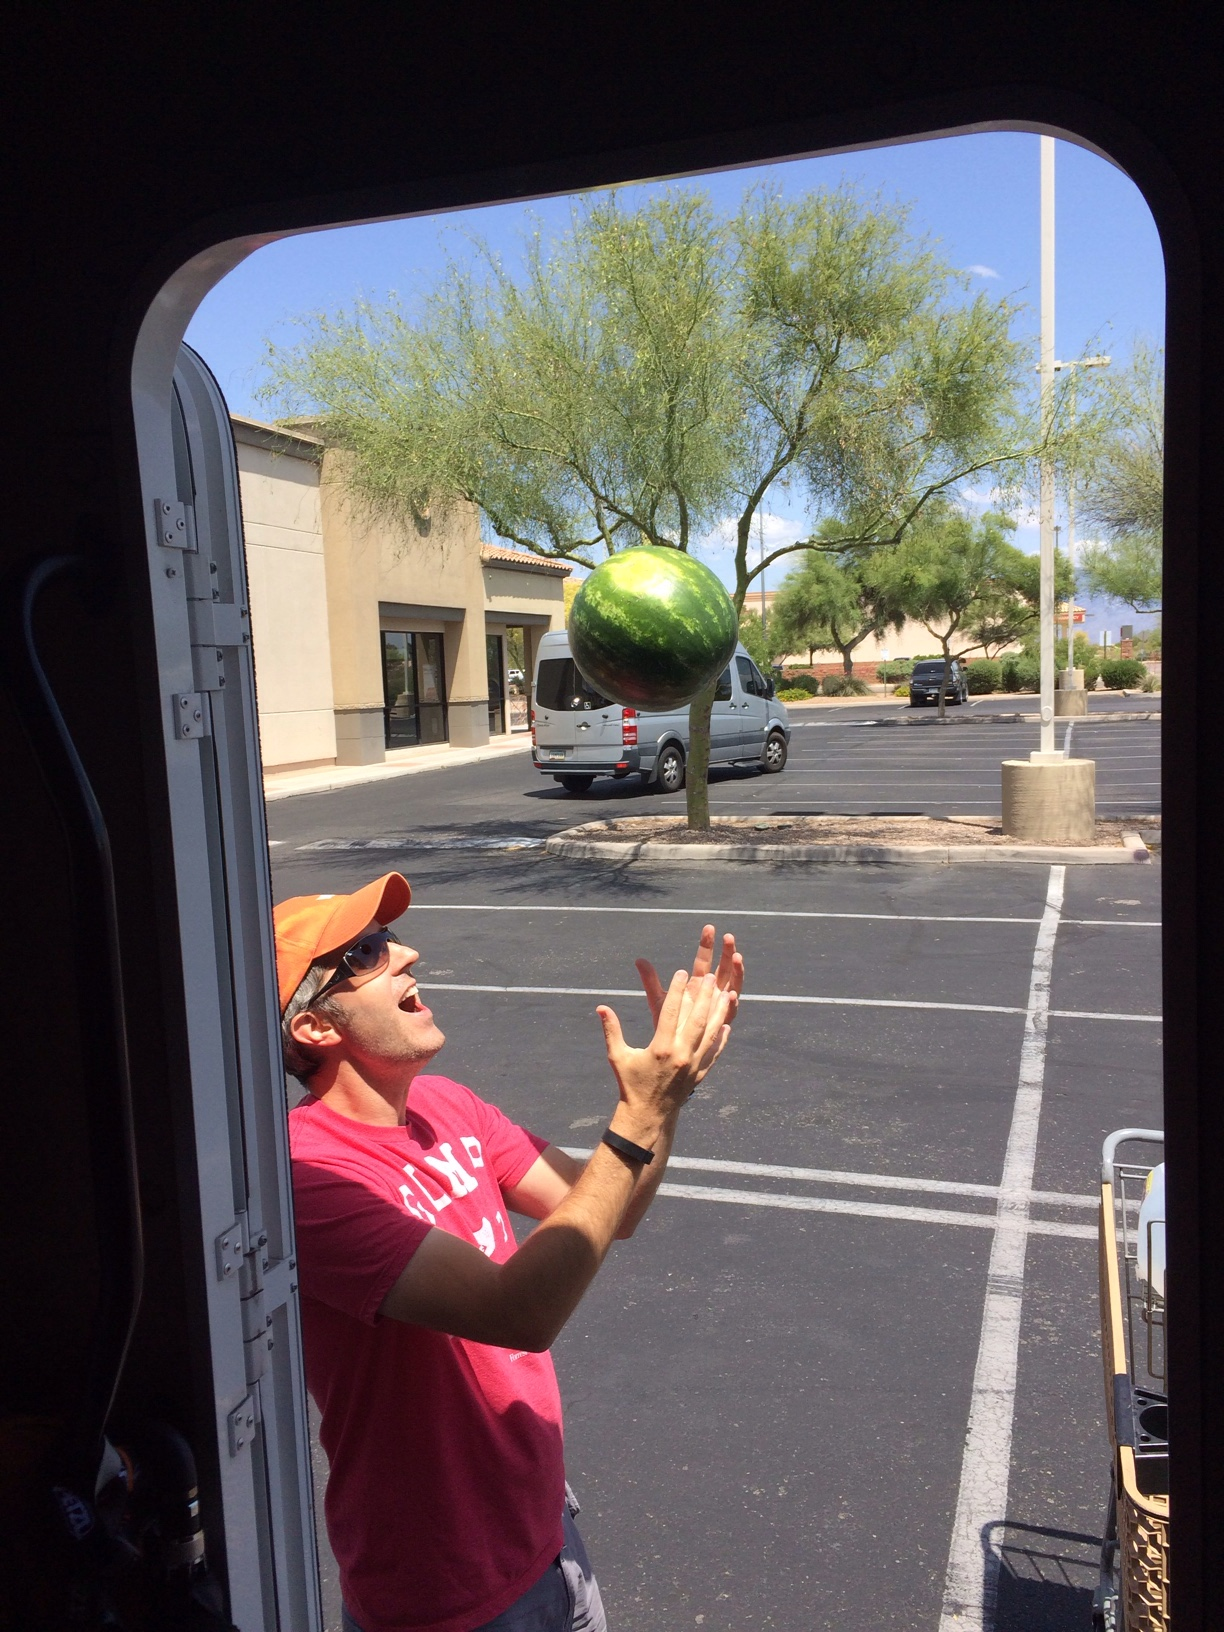 English hubby throwing watermelon into the air